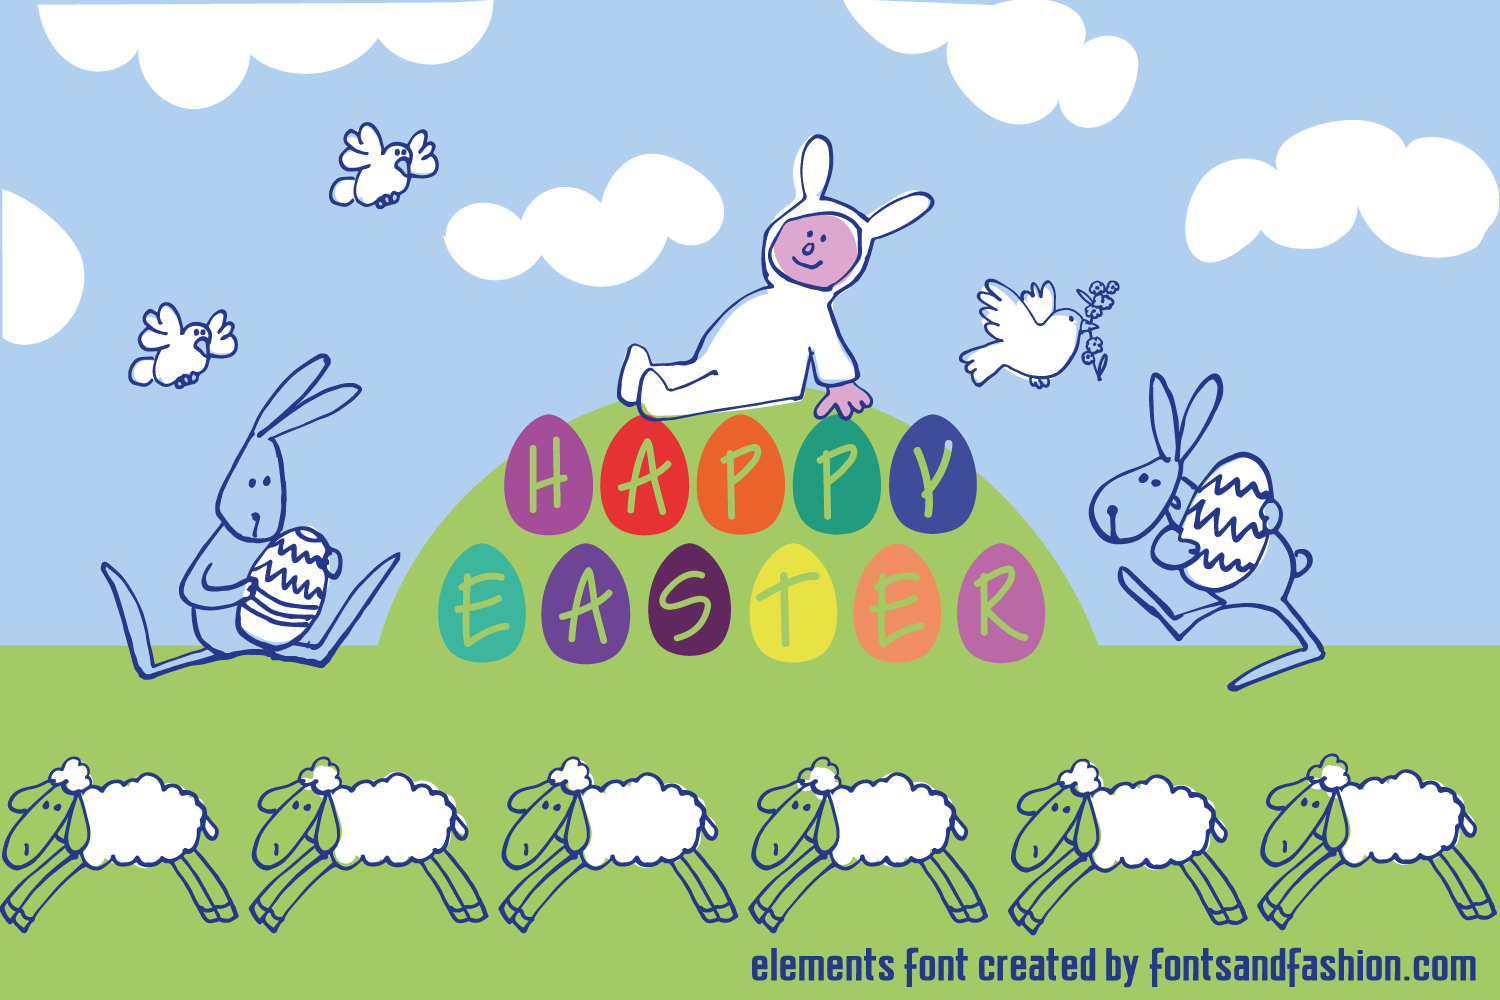 Happy Easter example image 7